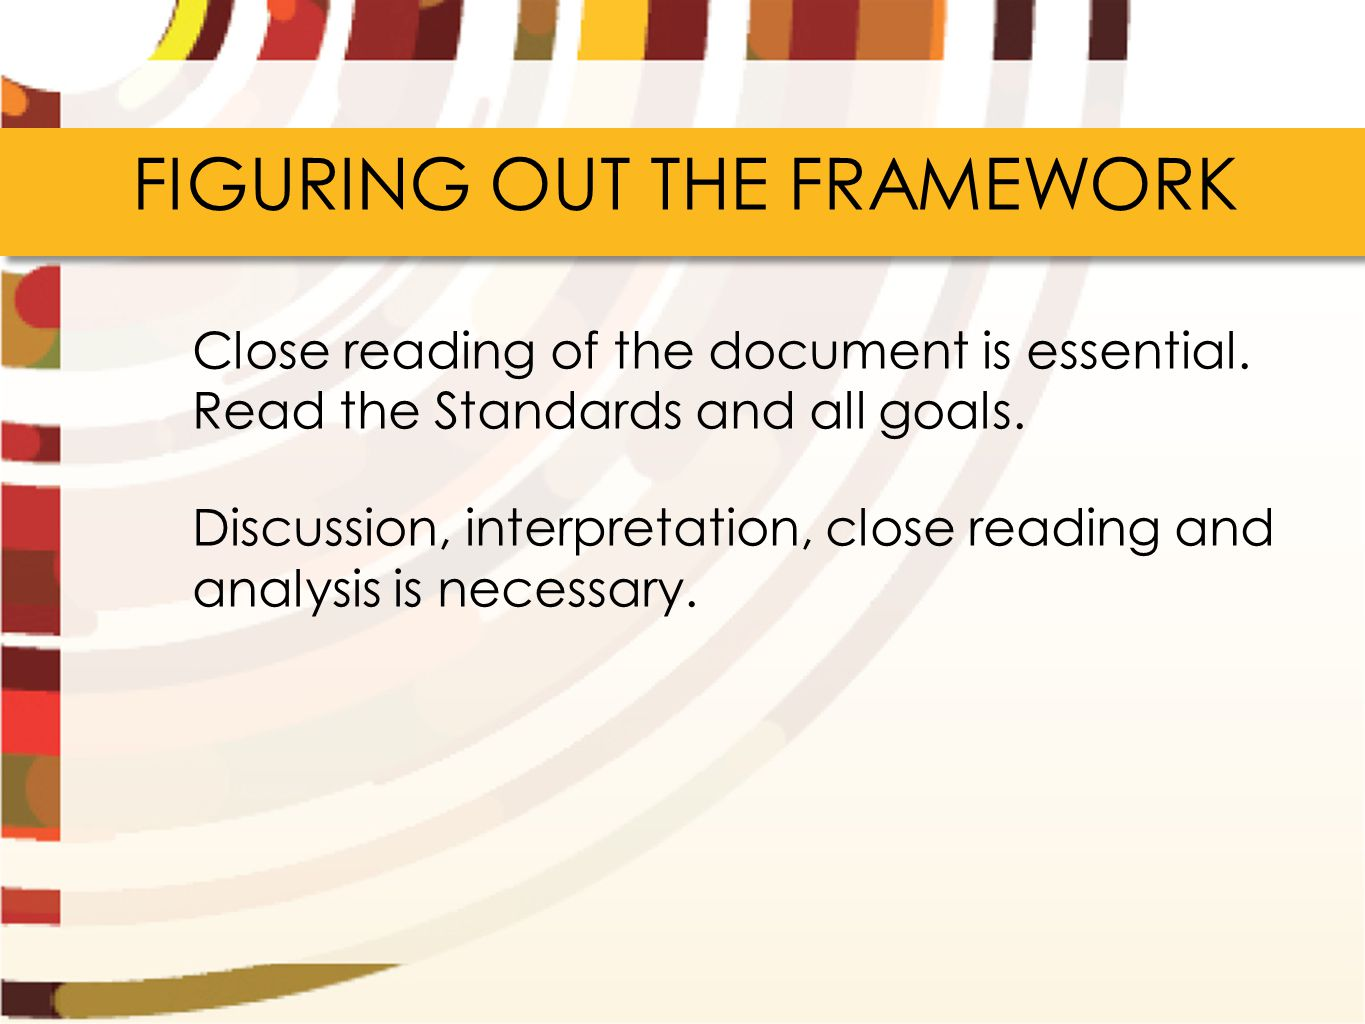 FIGURING OUT THE FRAMEWORK Close reading of the document is essential. Read the Standards and all goals. Discussion, interpretation, close reading and